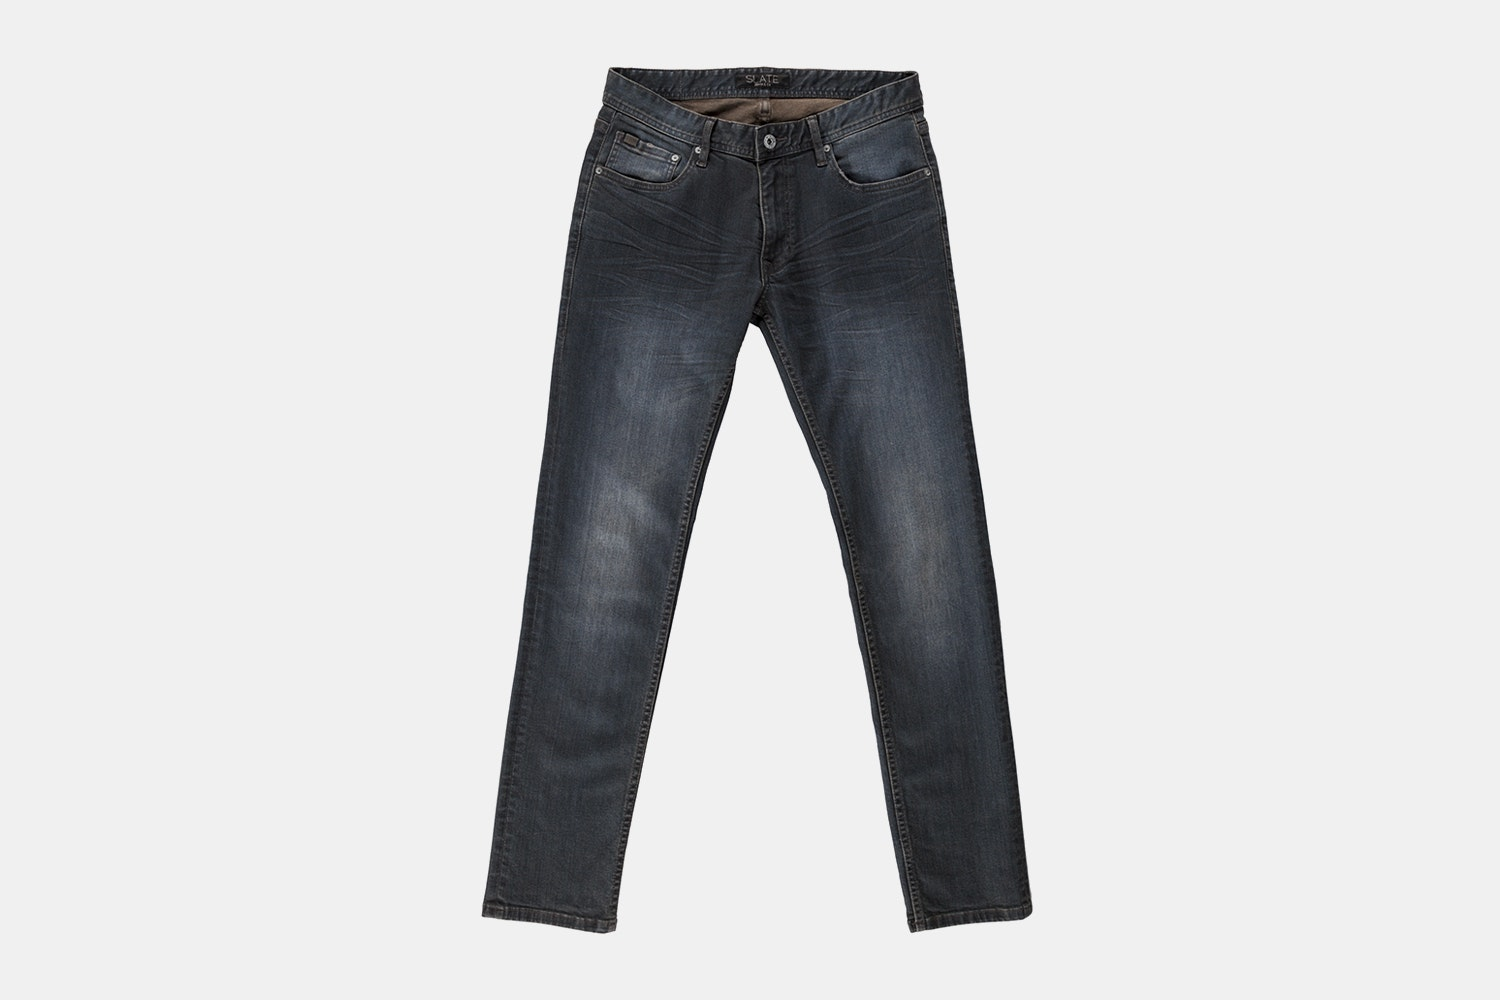 Slim Tapered - Grey Vintage Wash (+ $10)